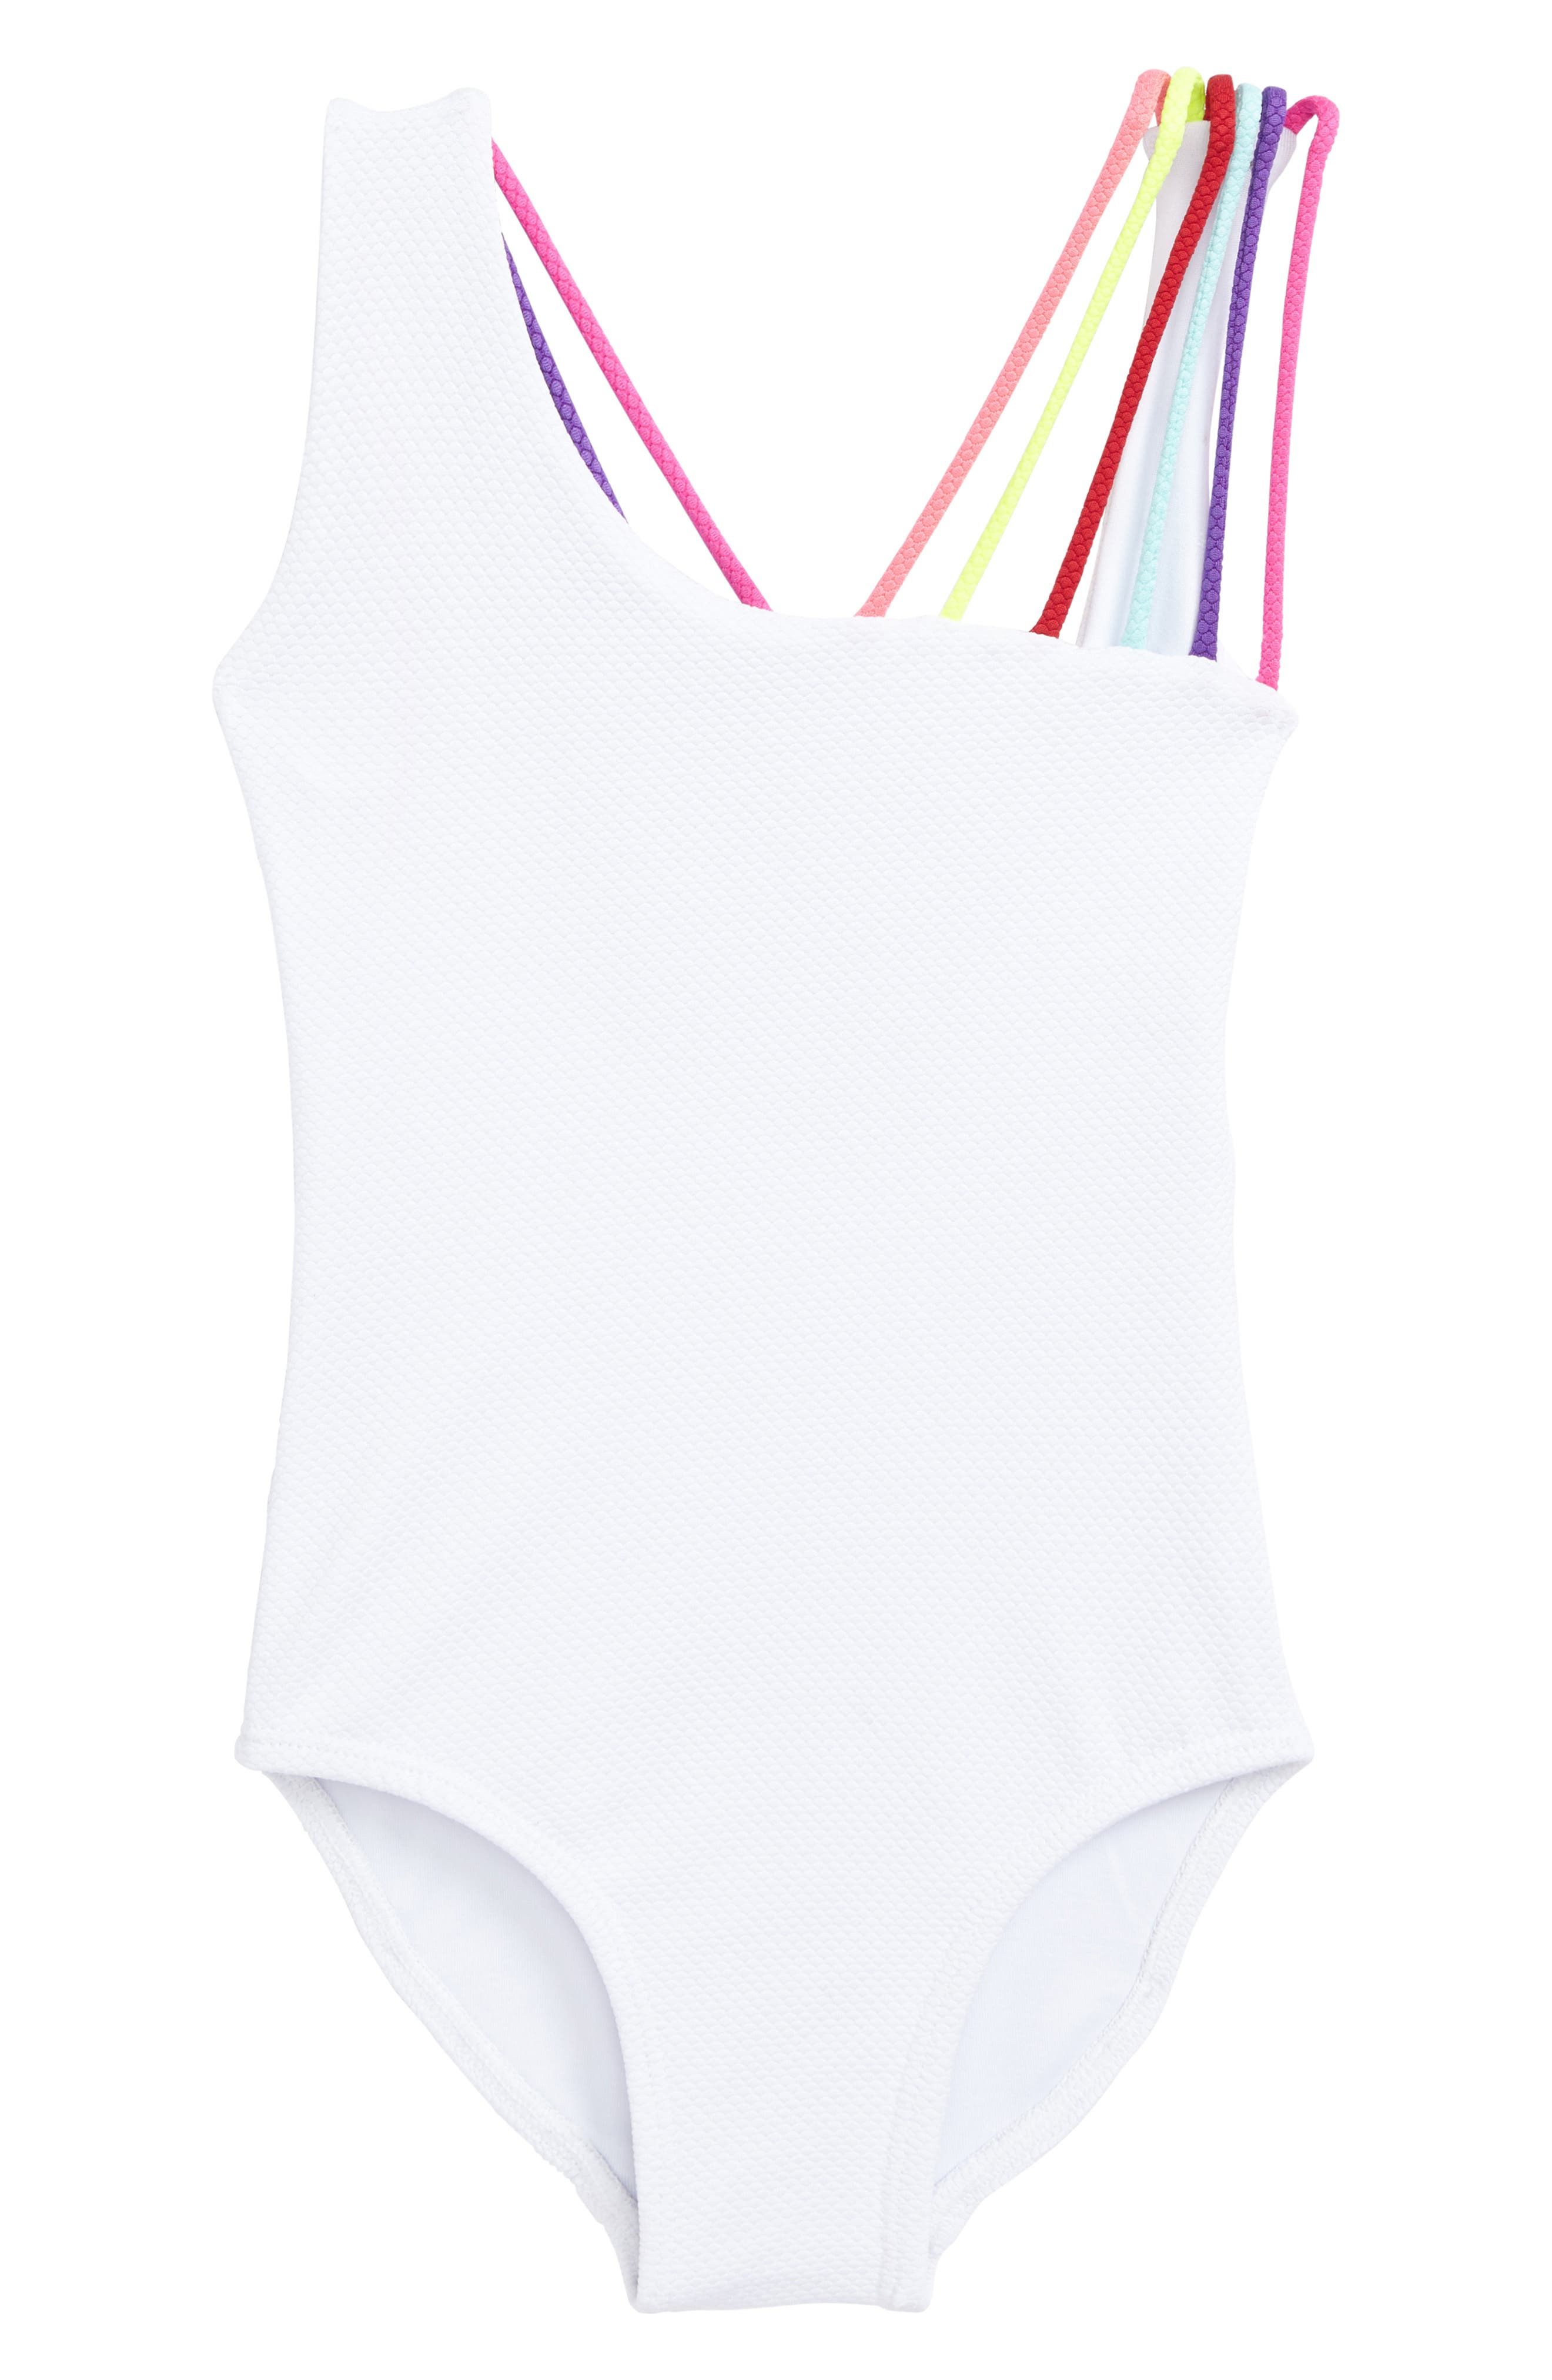 Olivia One-Piece Swimsuit,                             Main thumbnail 1, color,                             148